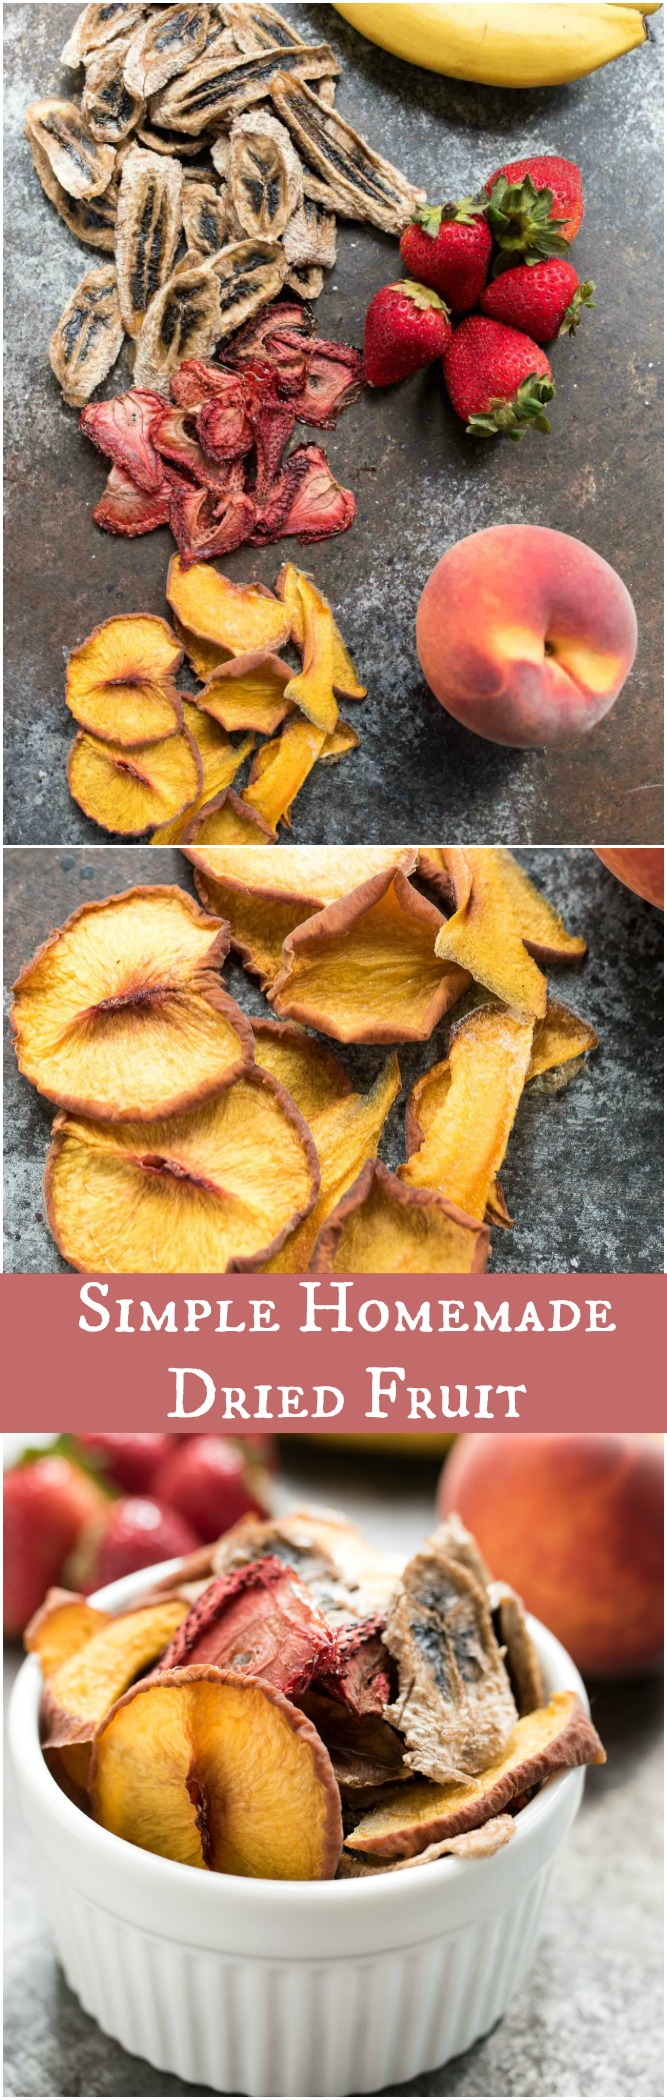 Simple Homemade Dried Fruit- all you need is fresh fruit and a low oven setting to make this no sugar added dried fruit! | www.nutritiouseats.com